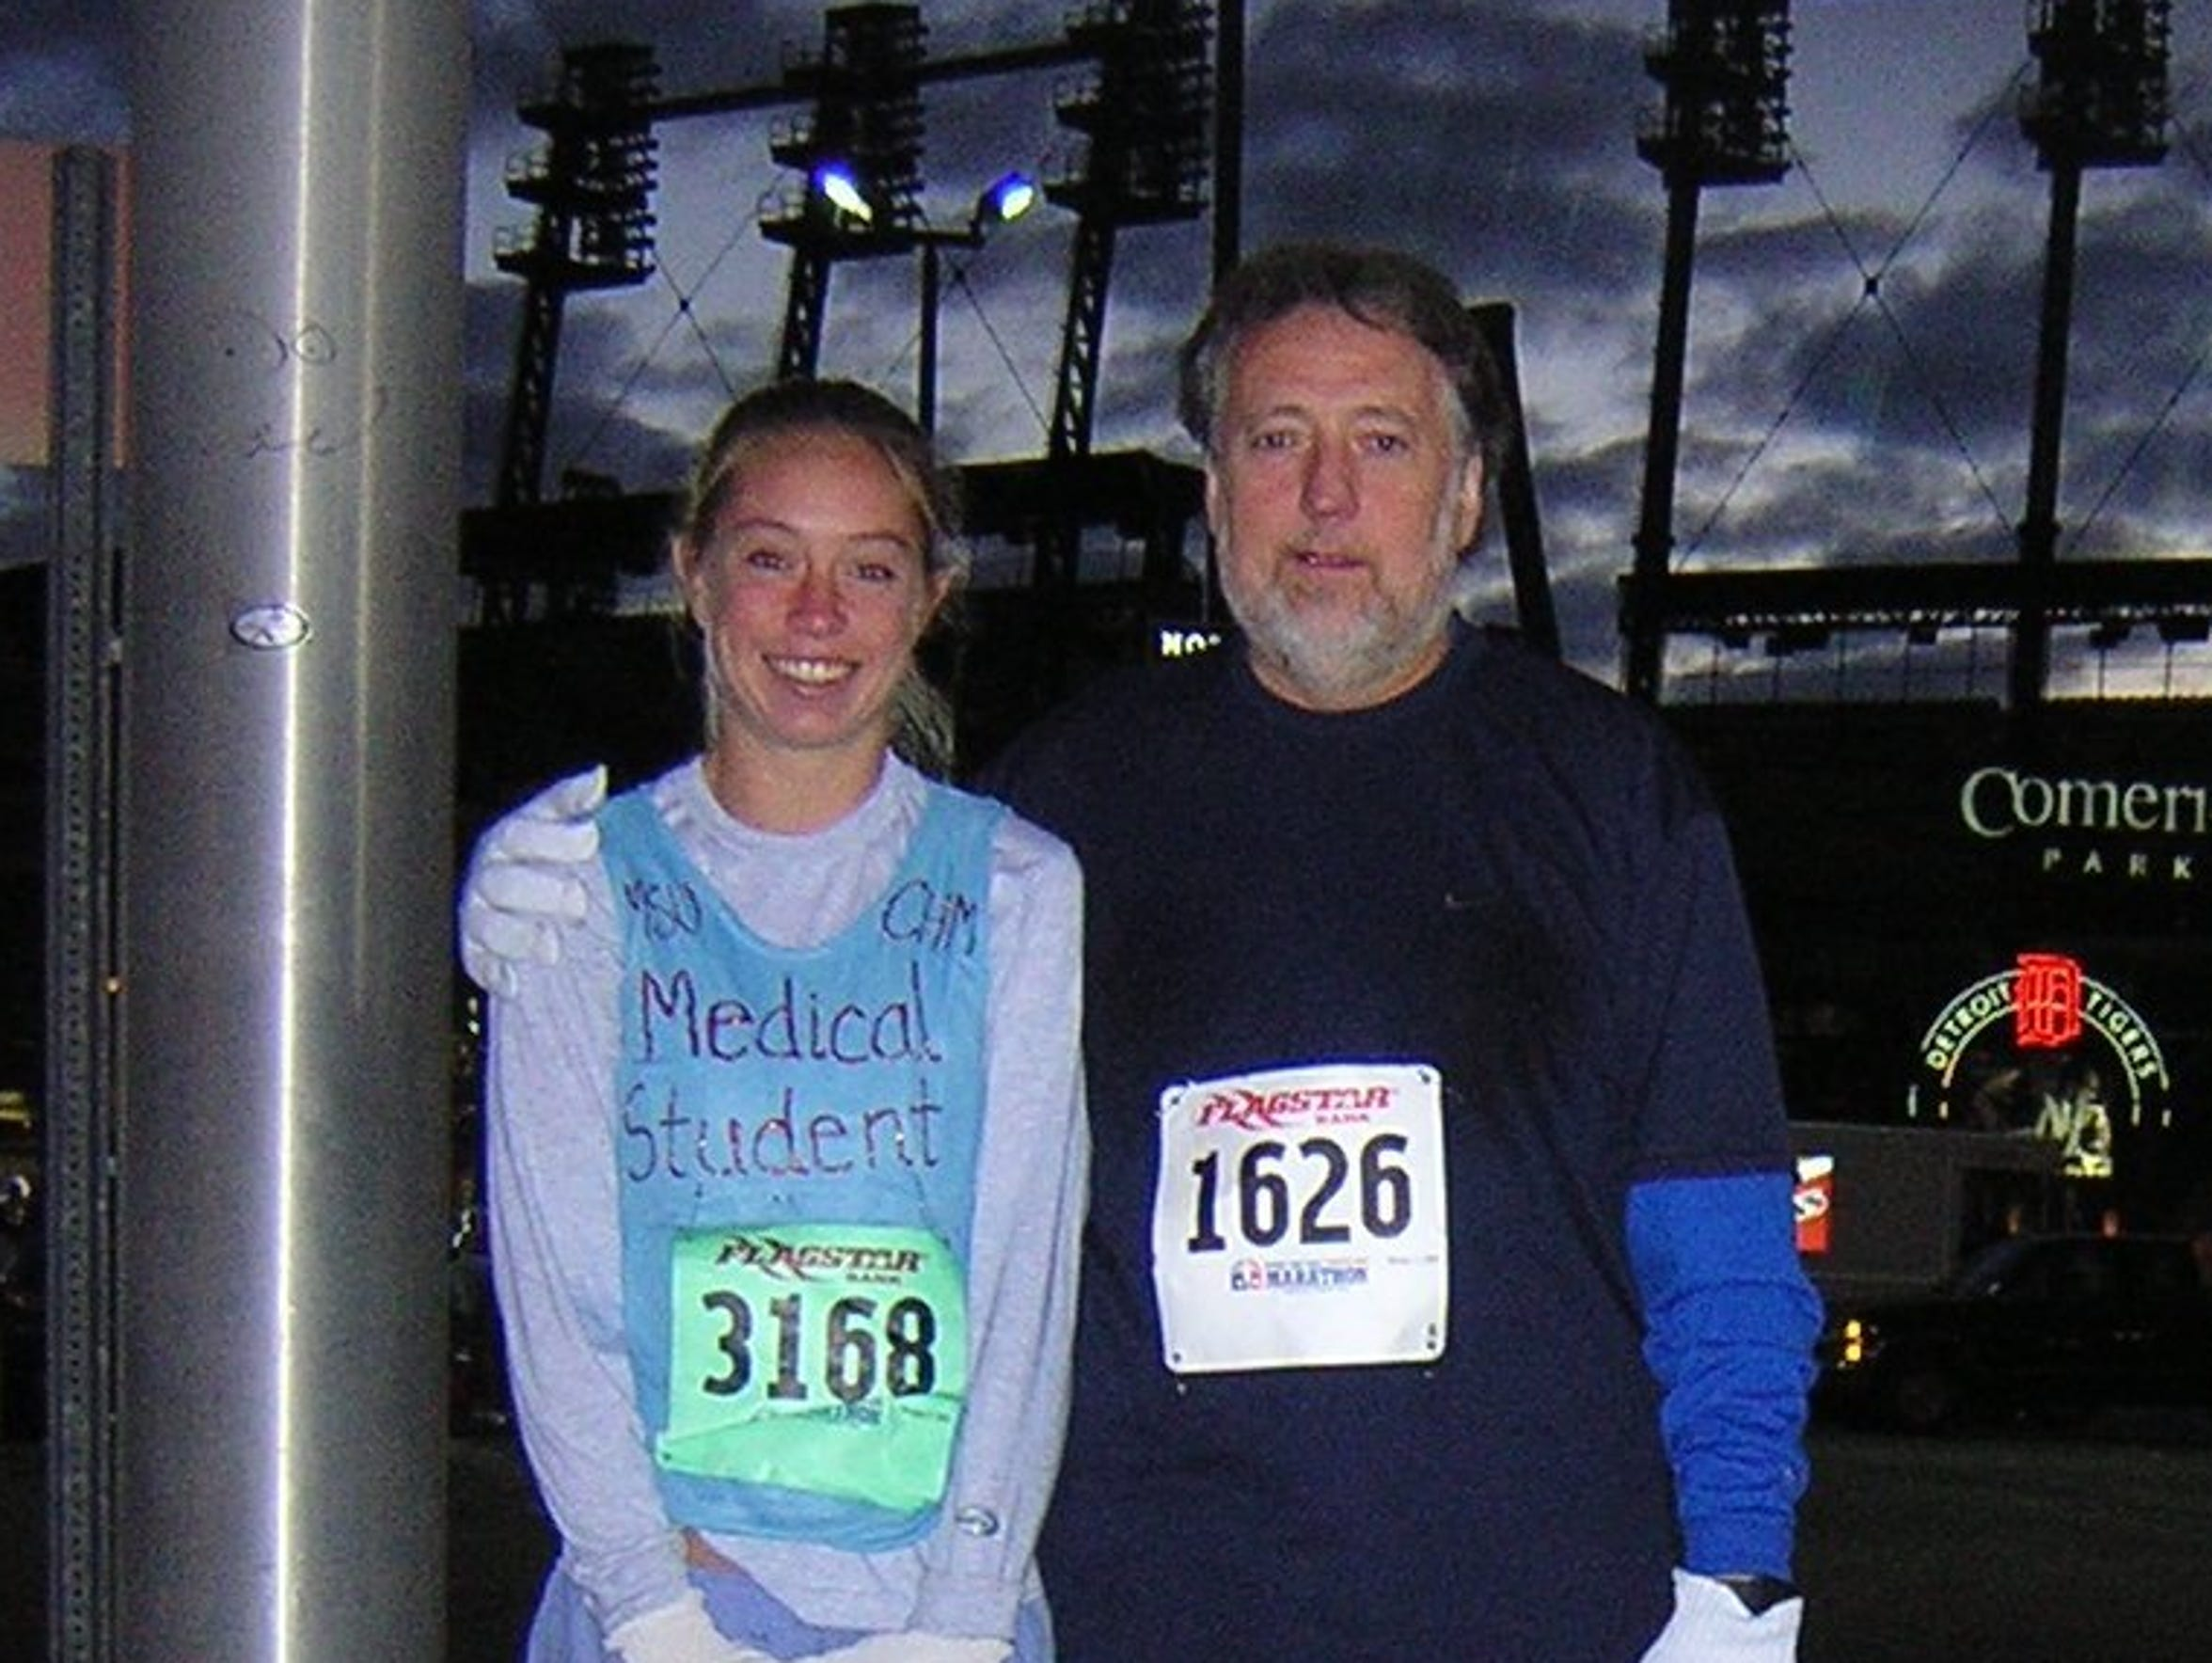 Katie McCabe and her father, Mick, pose in front of